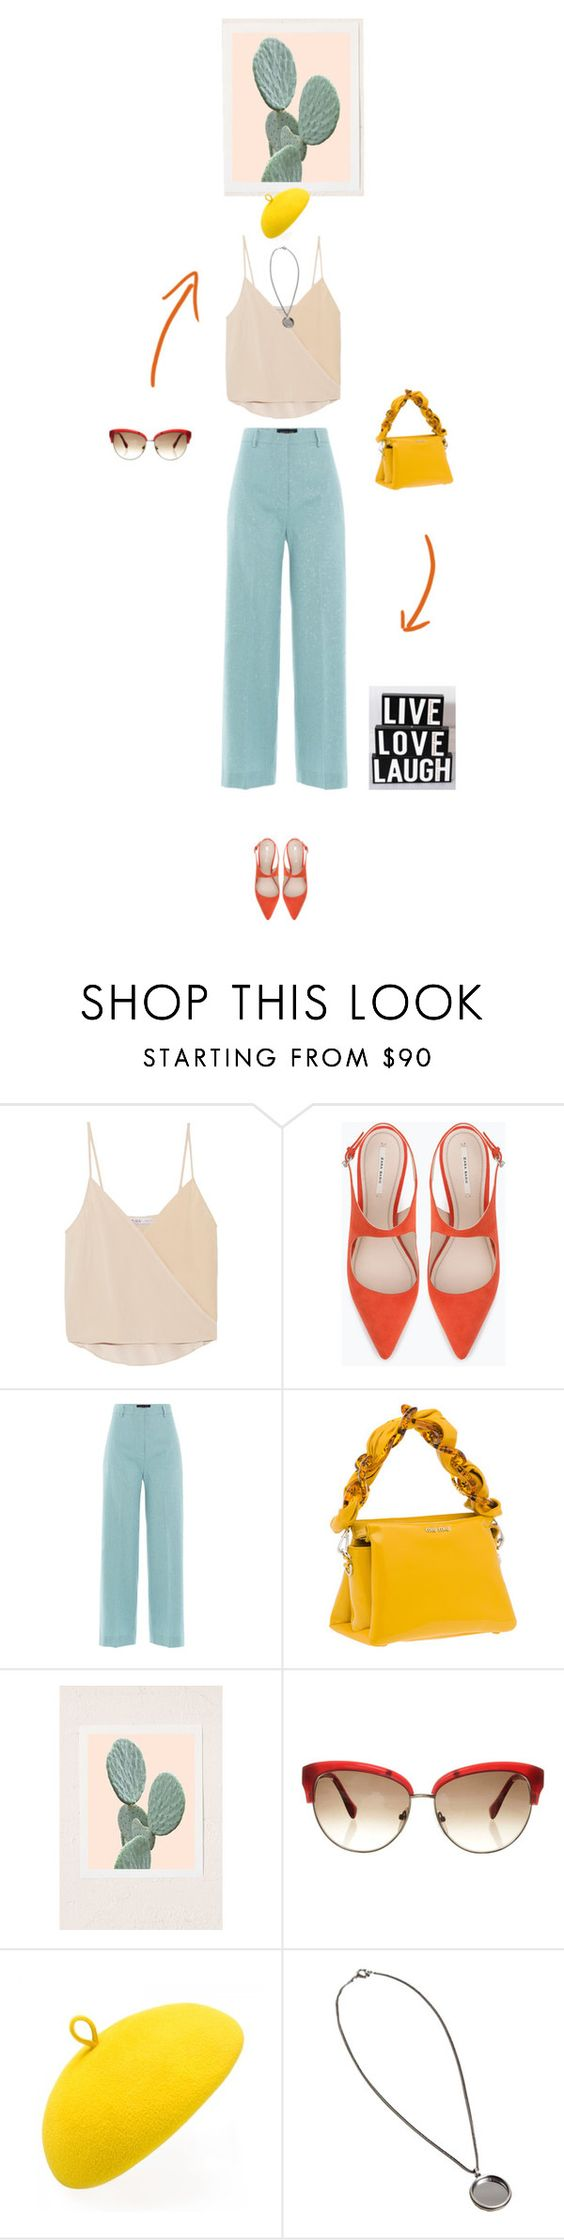 """""""live laugh love"""" by fanfan-zheng ❤ liked on Polyvore featuring Chelsea Flower, Zara, Piazza Sempione, Miu Miu, Urban Outfitters, Emilio Pucci, Mademoiselle Slassi and Ann Demeulemeester"""